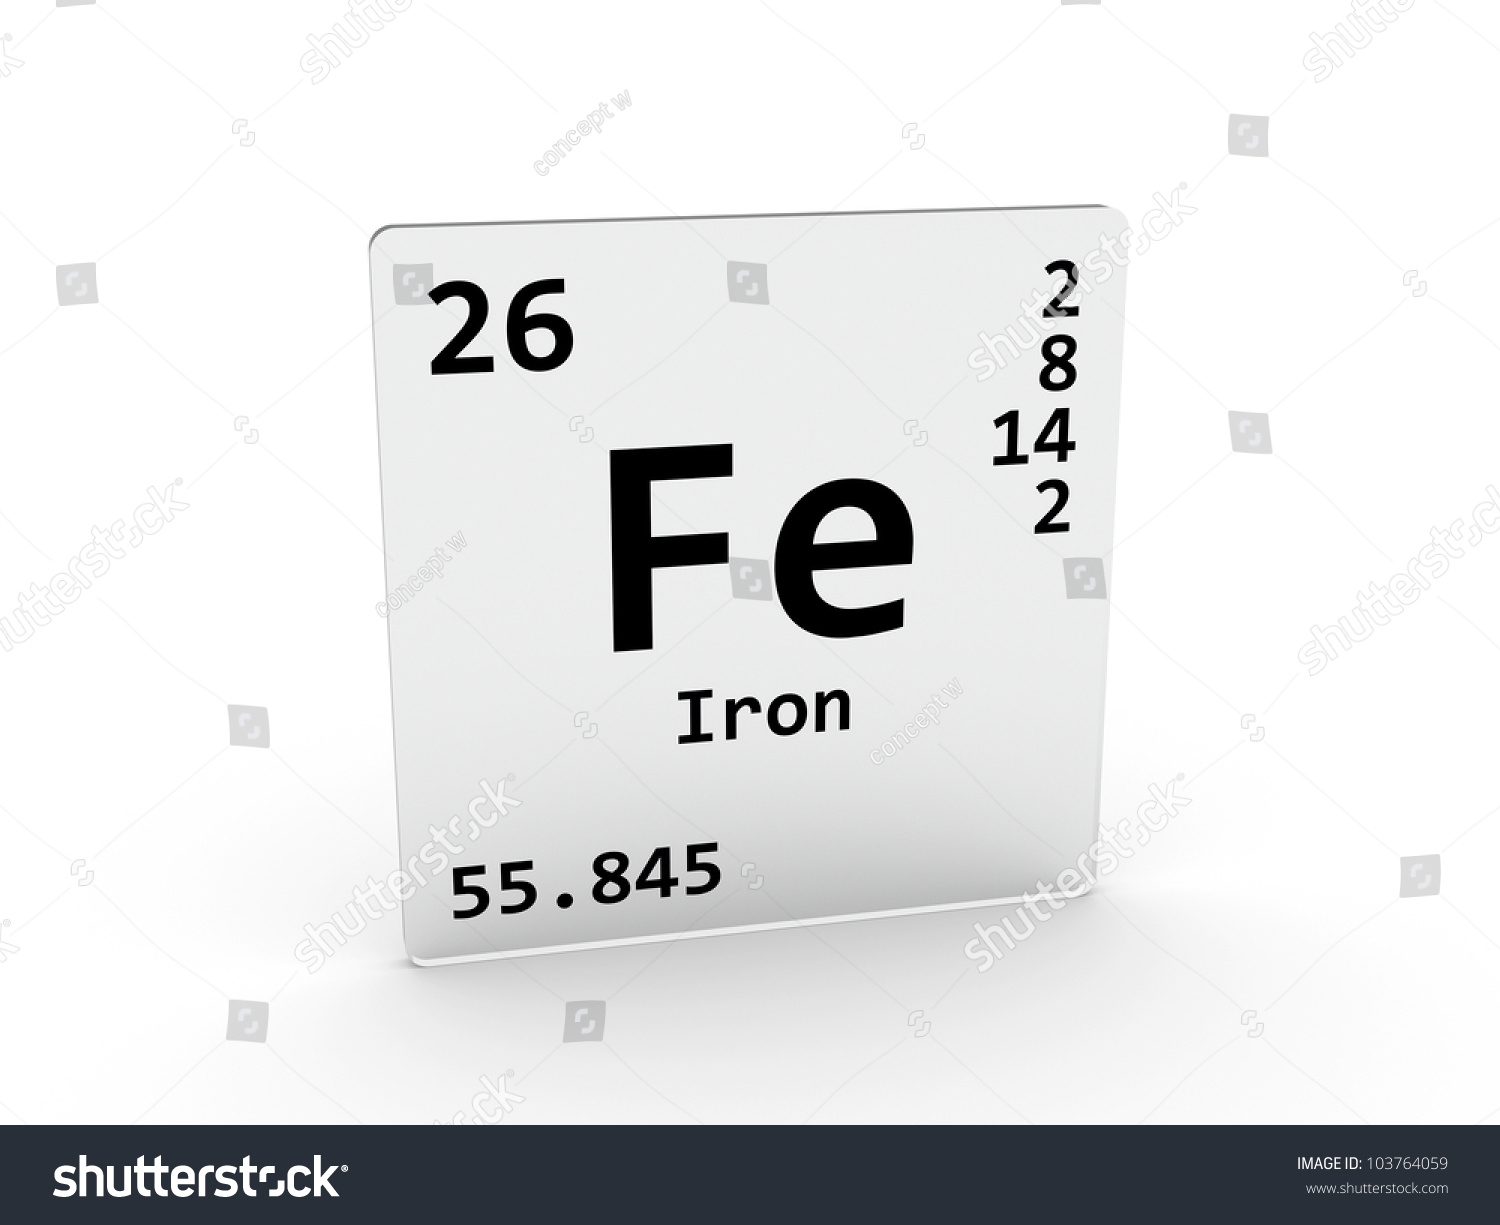 Iron symbol fe element periodic table stock illustration 103764059 iron symbol fe element of the periodic table gamestrikefo Choice Image